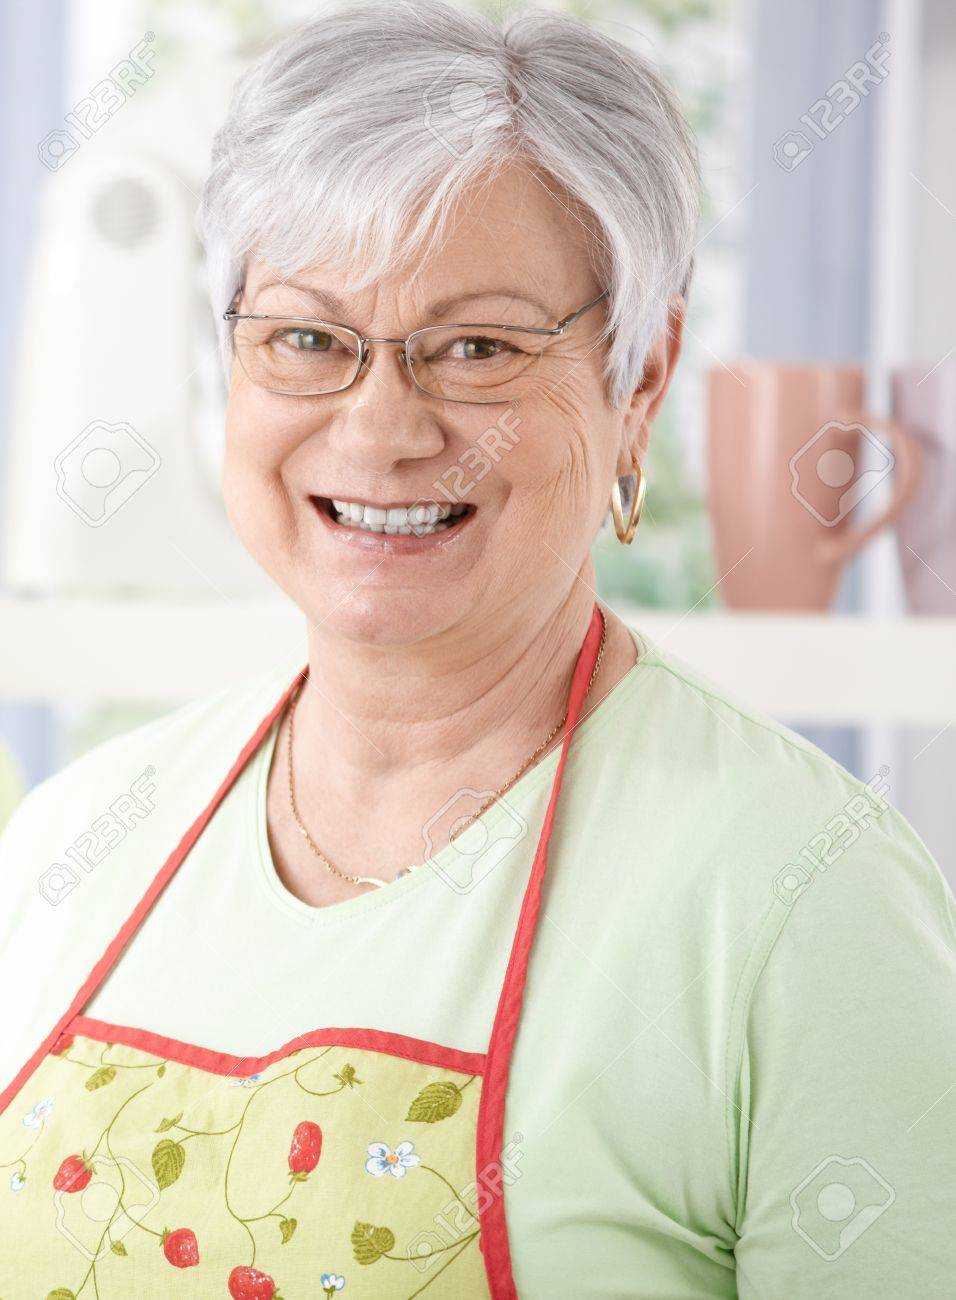 Portrait of senior woman smiling happily, wearing cooking apron. Stock Photo - 9208600